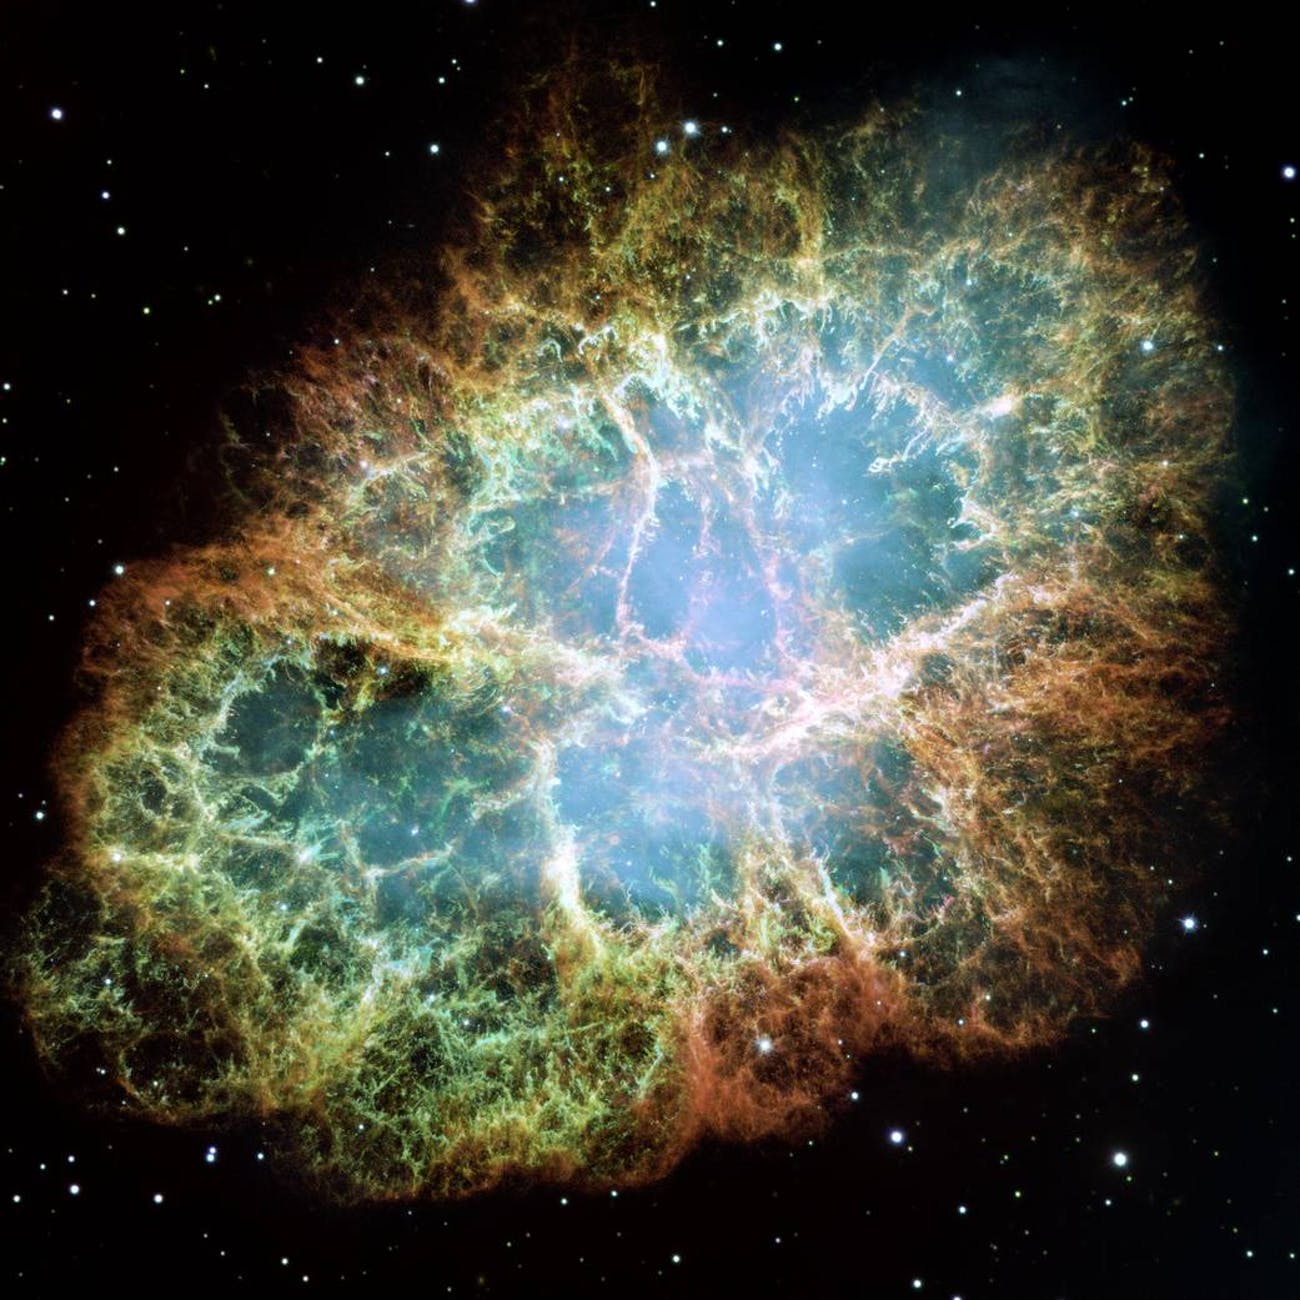 In the Crab Nebula's very center lies a pulsar: a neutron star as massive as the Sun but with only the size of a small town. The Crab Pulsar rotates about 30 times each second.